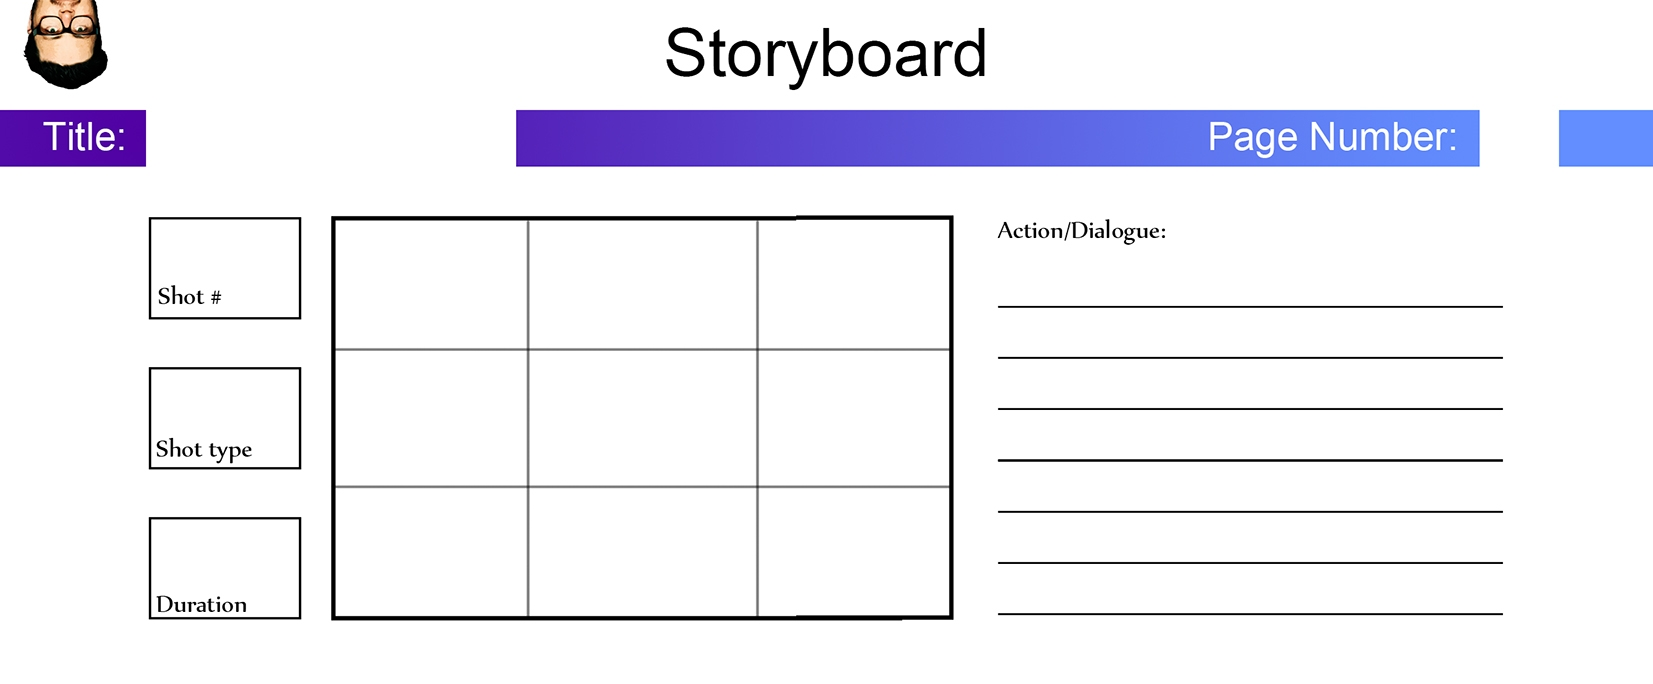 Tv Commercial Storyboard Template from cdn.edex.adobe.com